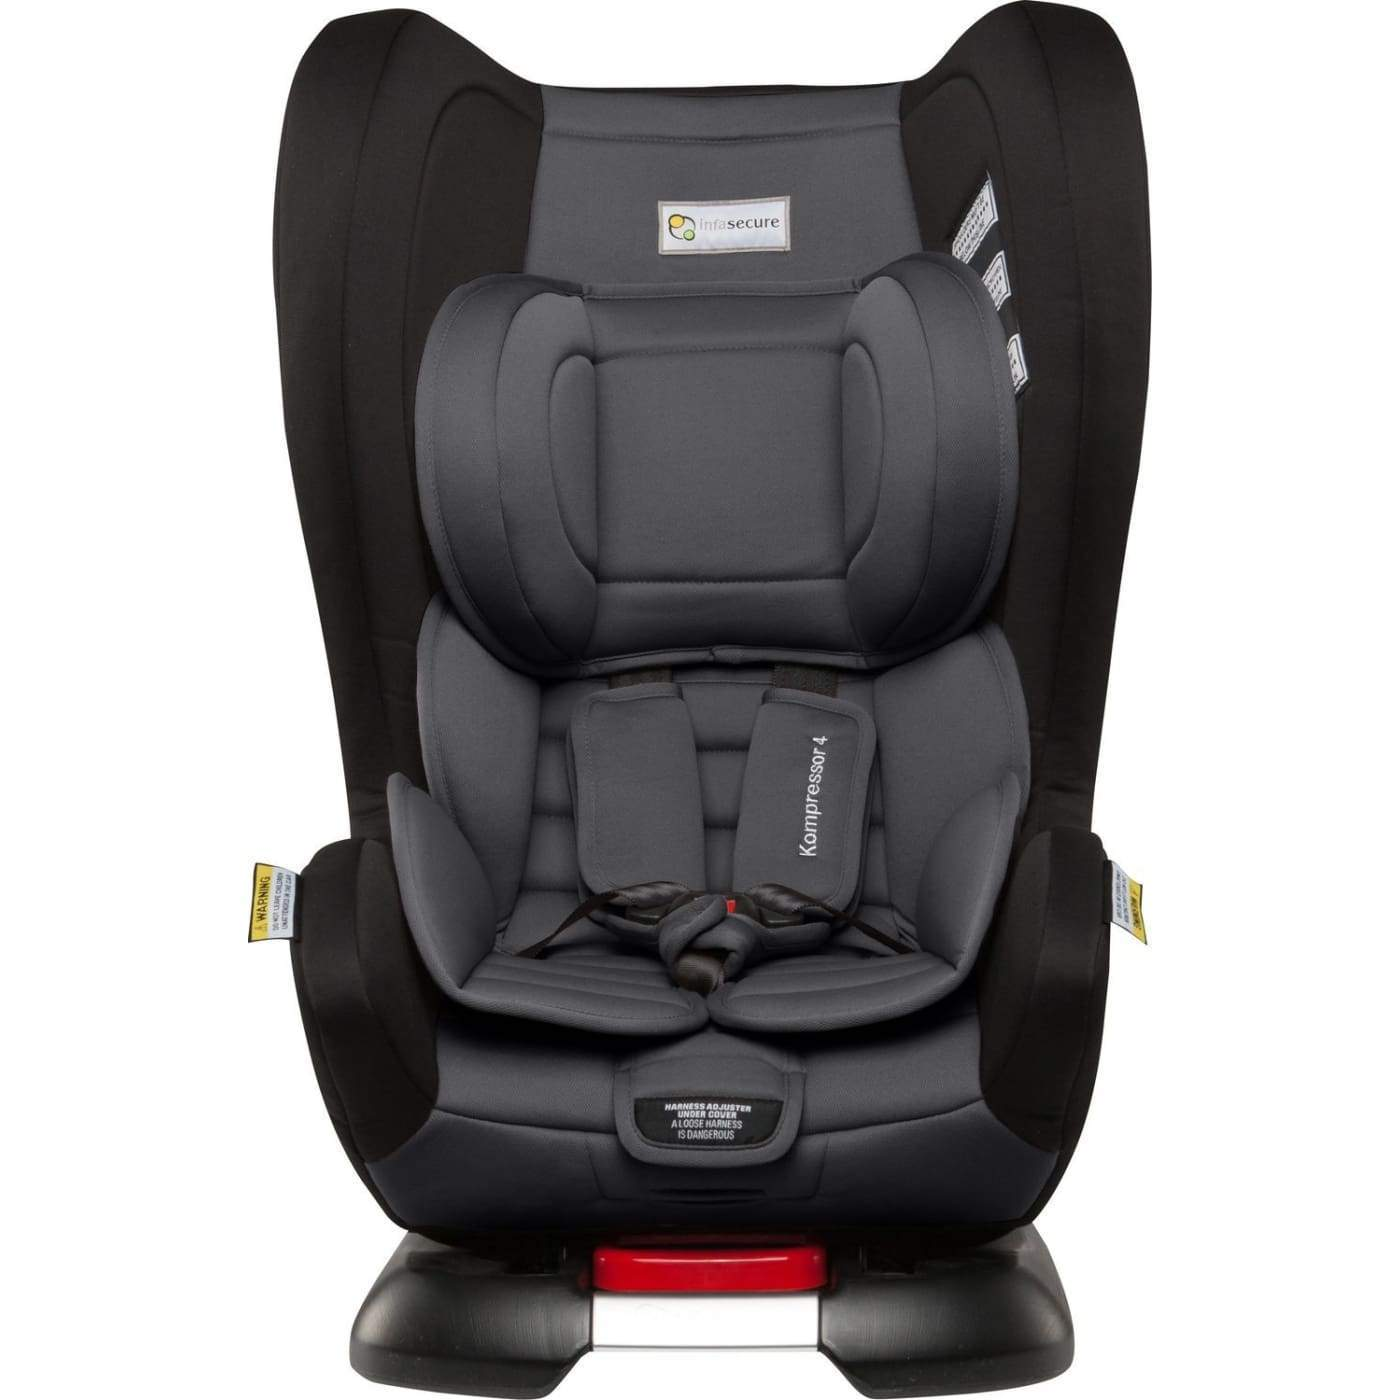 InfaSecure Astra Kompressor 4 Isofix Convertible Car Seat 0-4YR - Grey - CAR SEATS - CONV ISOFIX CAR SEATS (0-4YR)